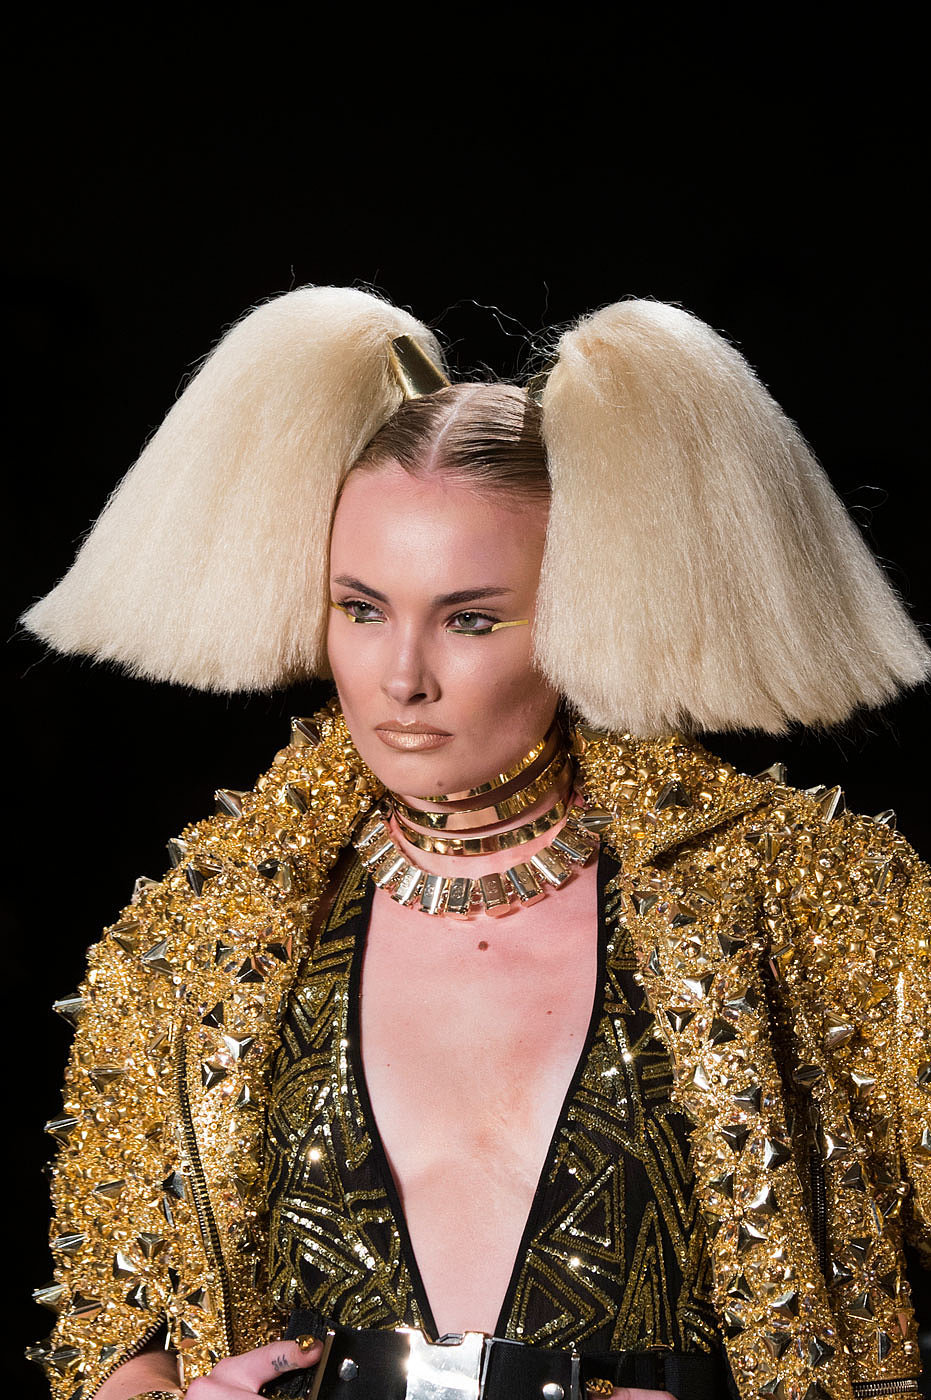 Blonds Spring-Summer 2016 Hairstyles